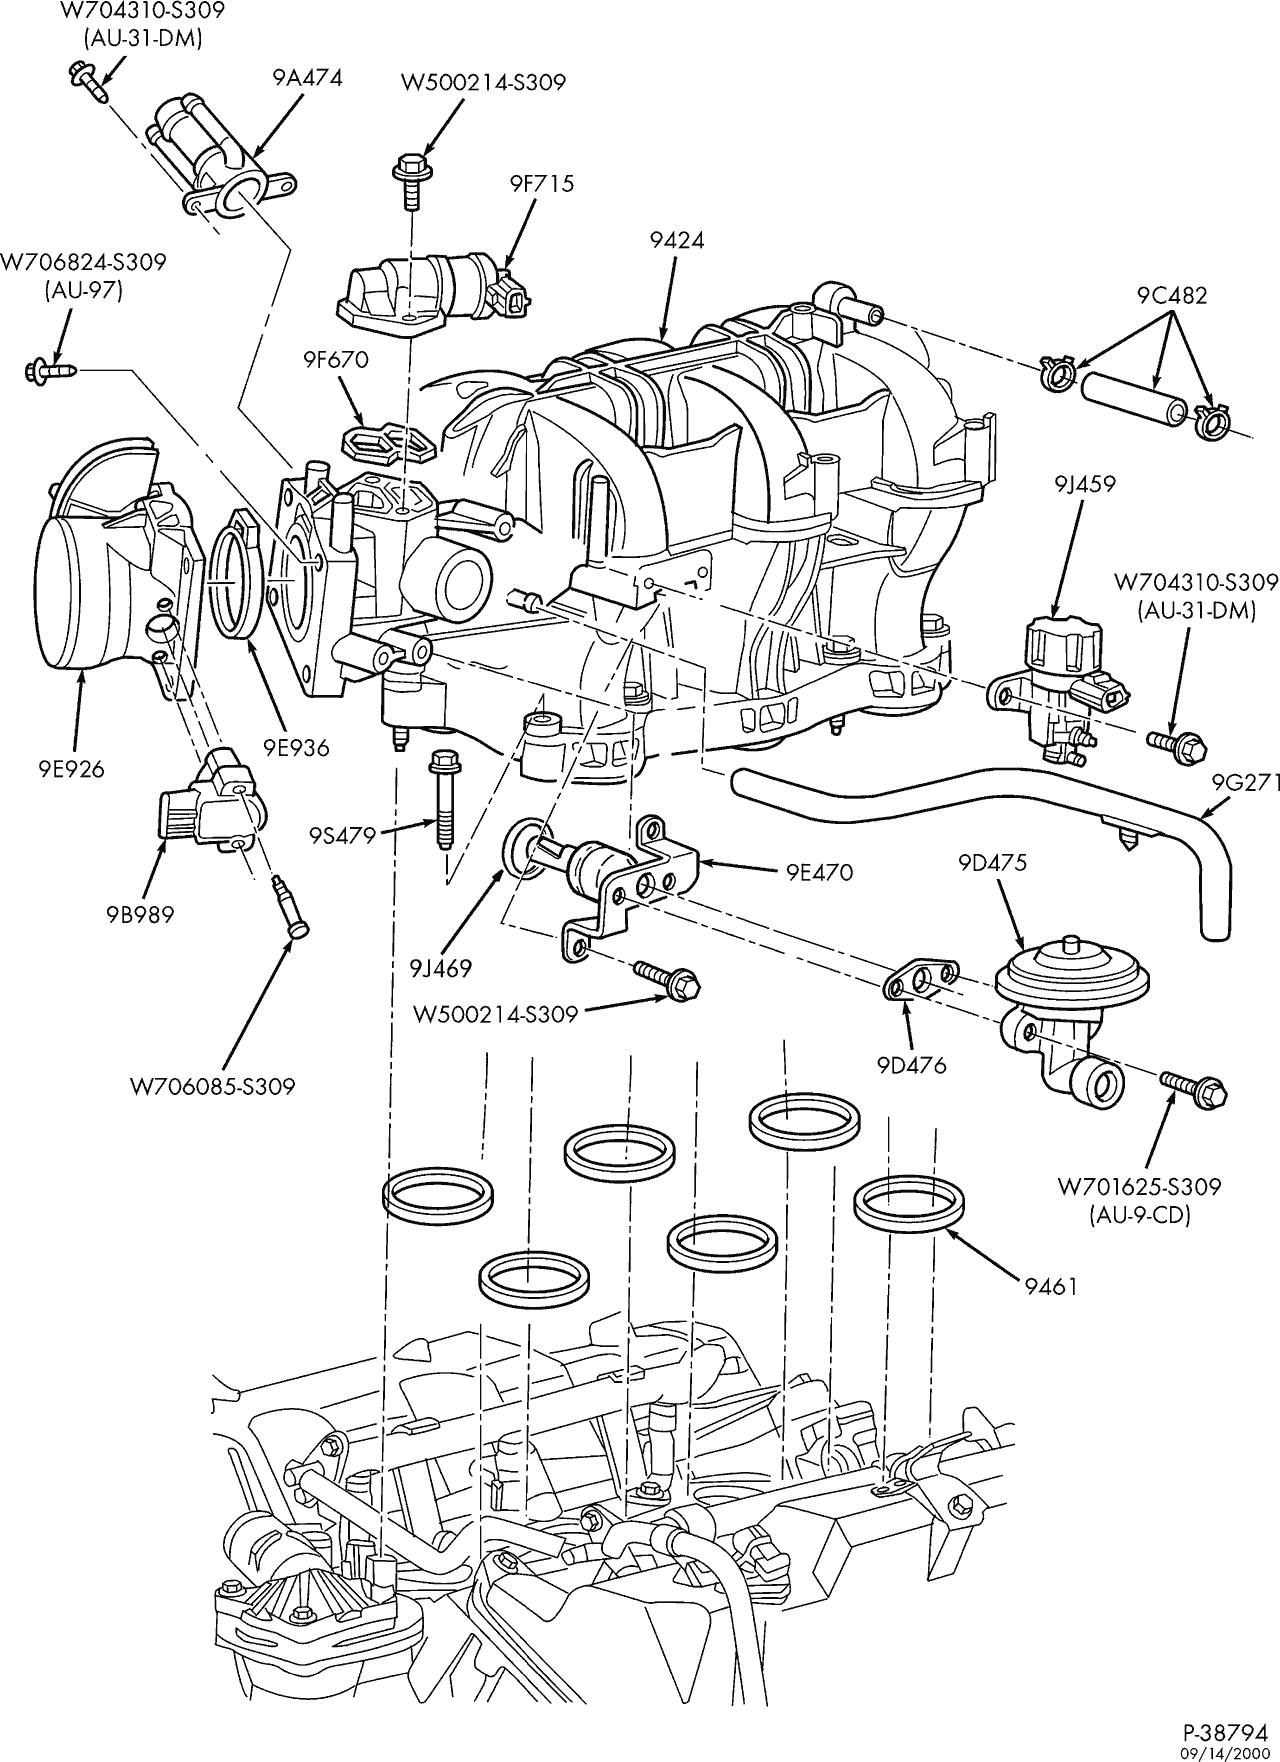 Ford Ranger 4 0 Engine Exploded Diagram Wiring Diagram Left Tags A Left Tags A Bowlingronta It